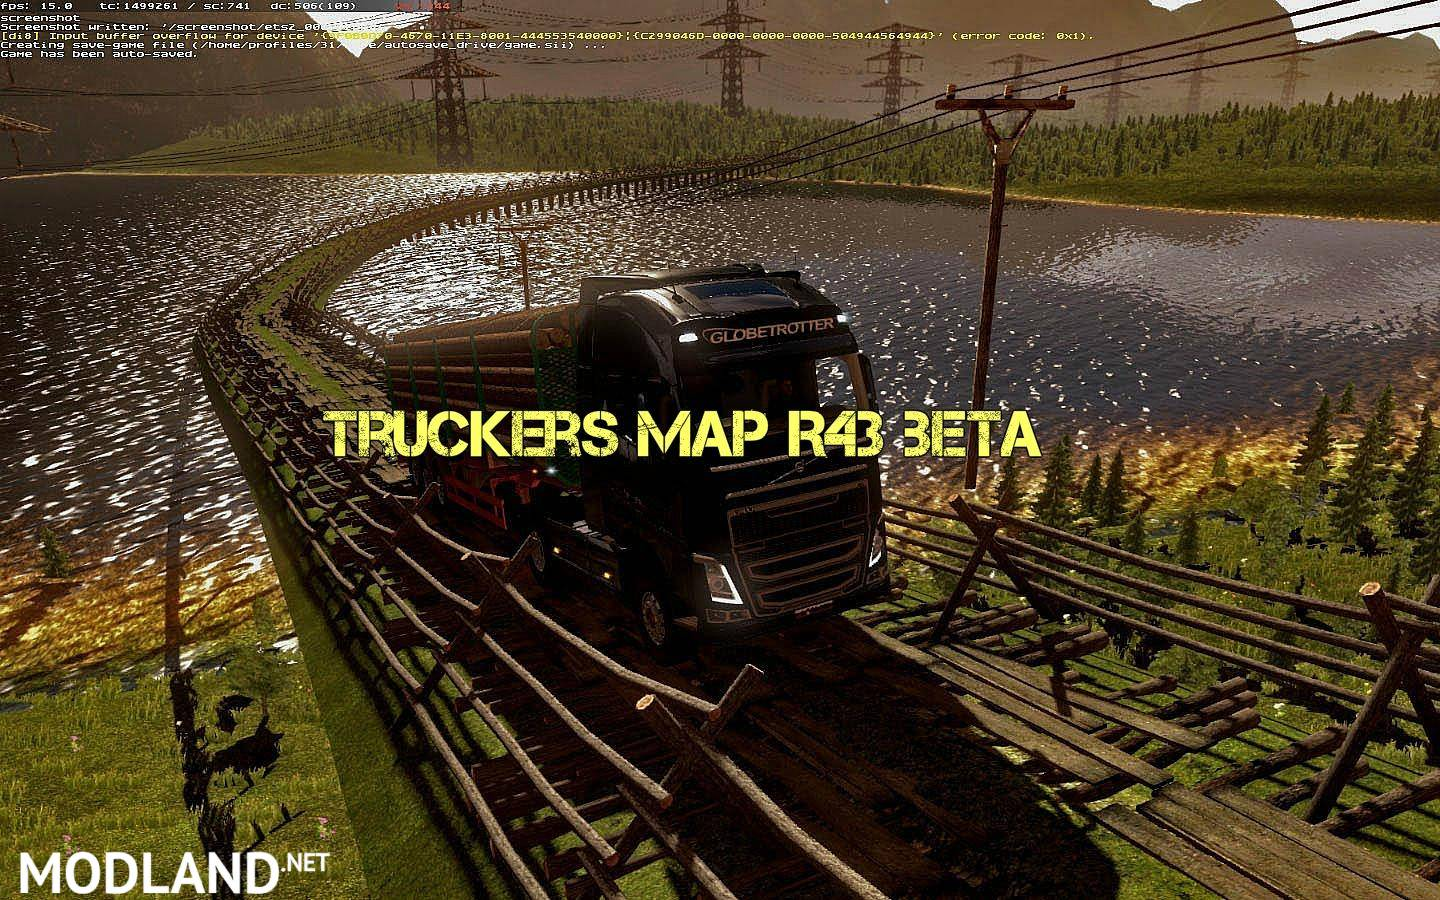 honda ets2 mod with Truckers Map R43 Beta 2 on Eaa Bus 1 5 further Biza Car further Hino 500 3 besides respond likewise Japan Car  pany Trailer Pack V1 0.